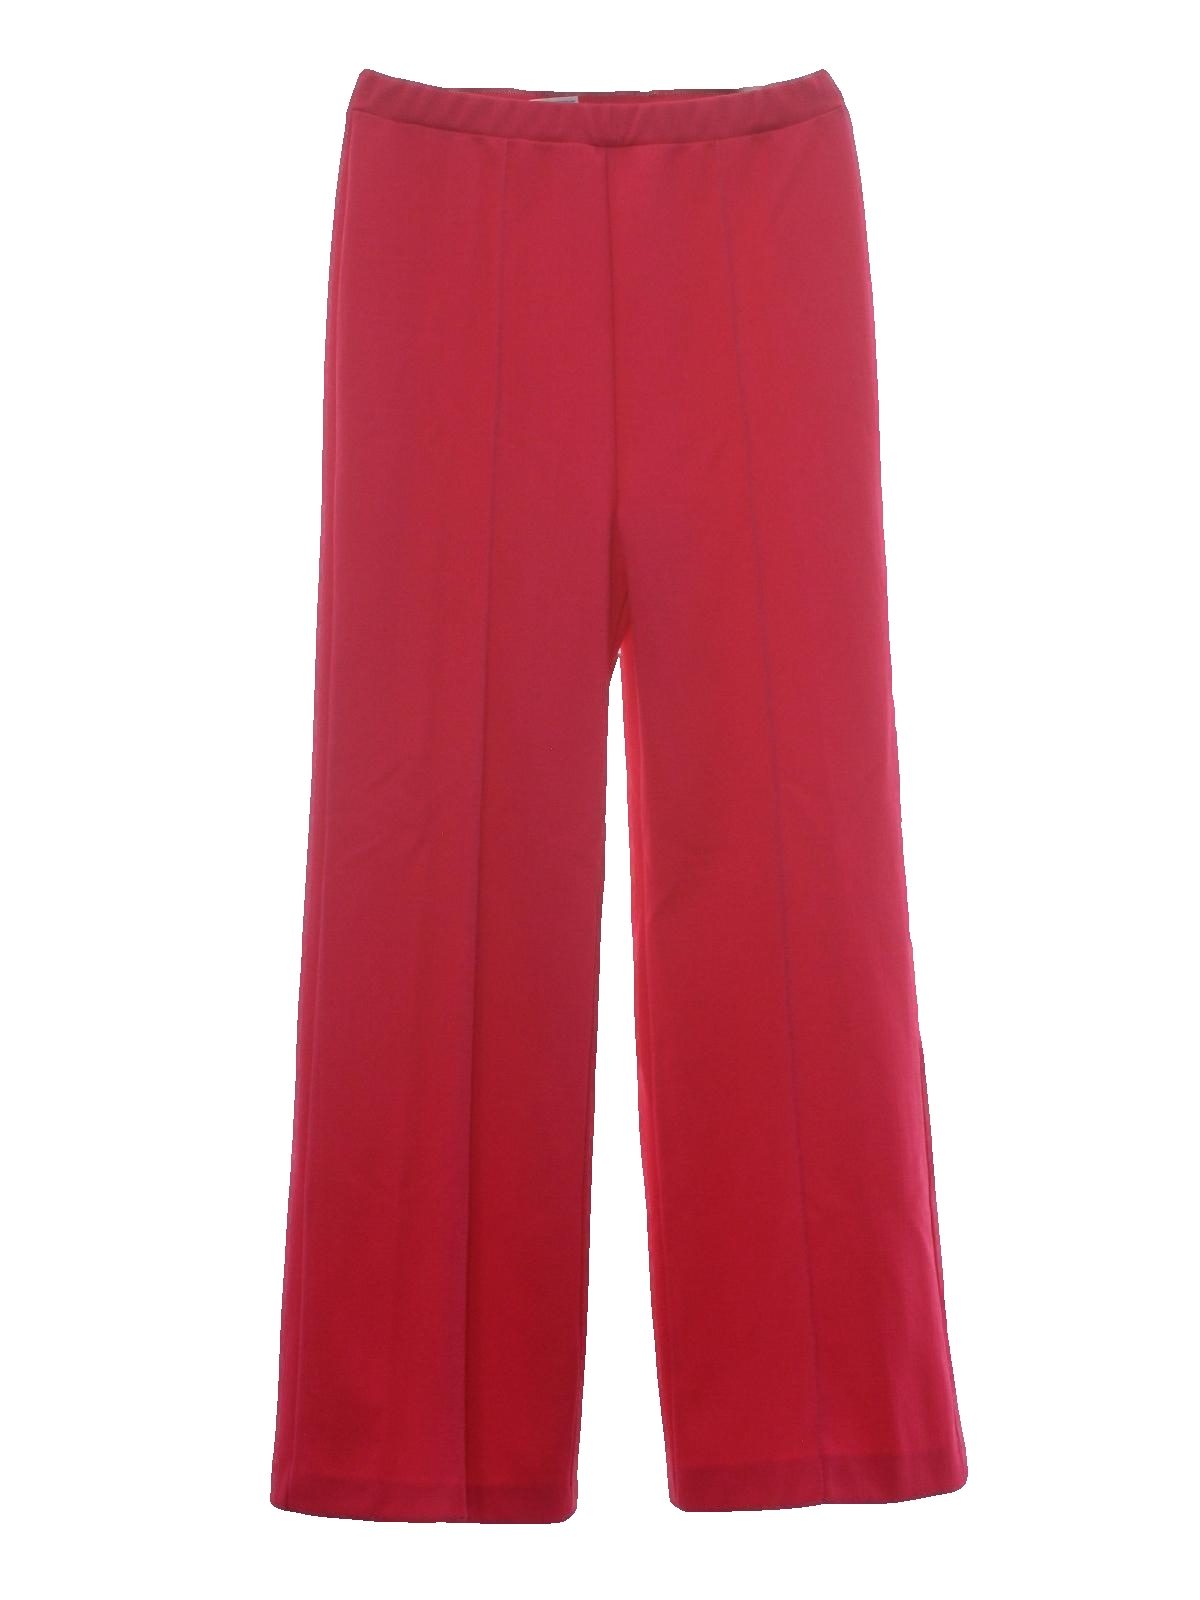 e1876d058b2 Retro Seventies Flared Pants   Flares  70s -Pykettes- Womens hot ...